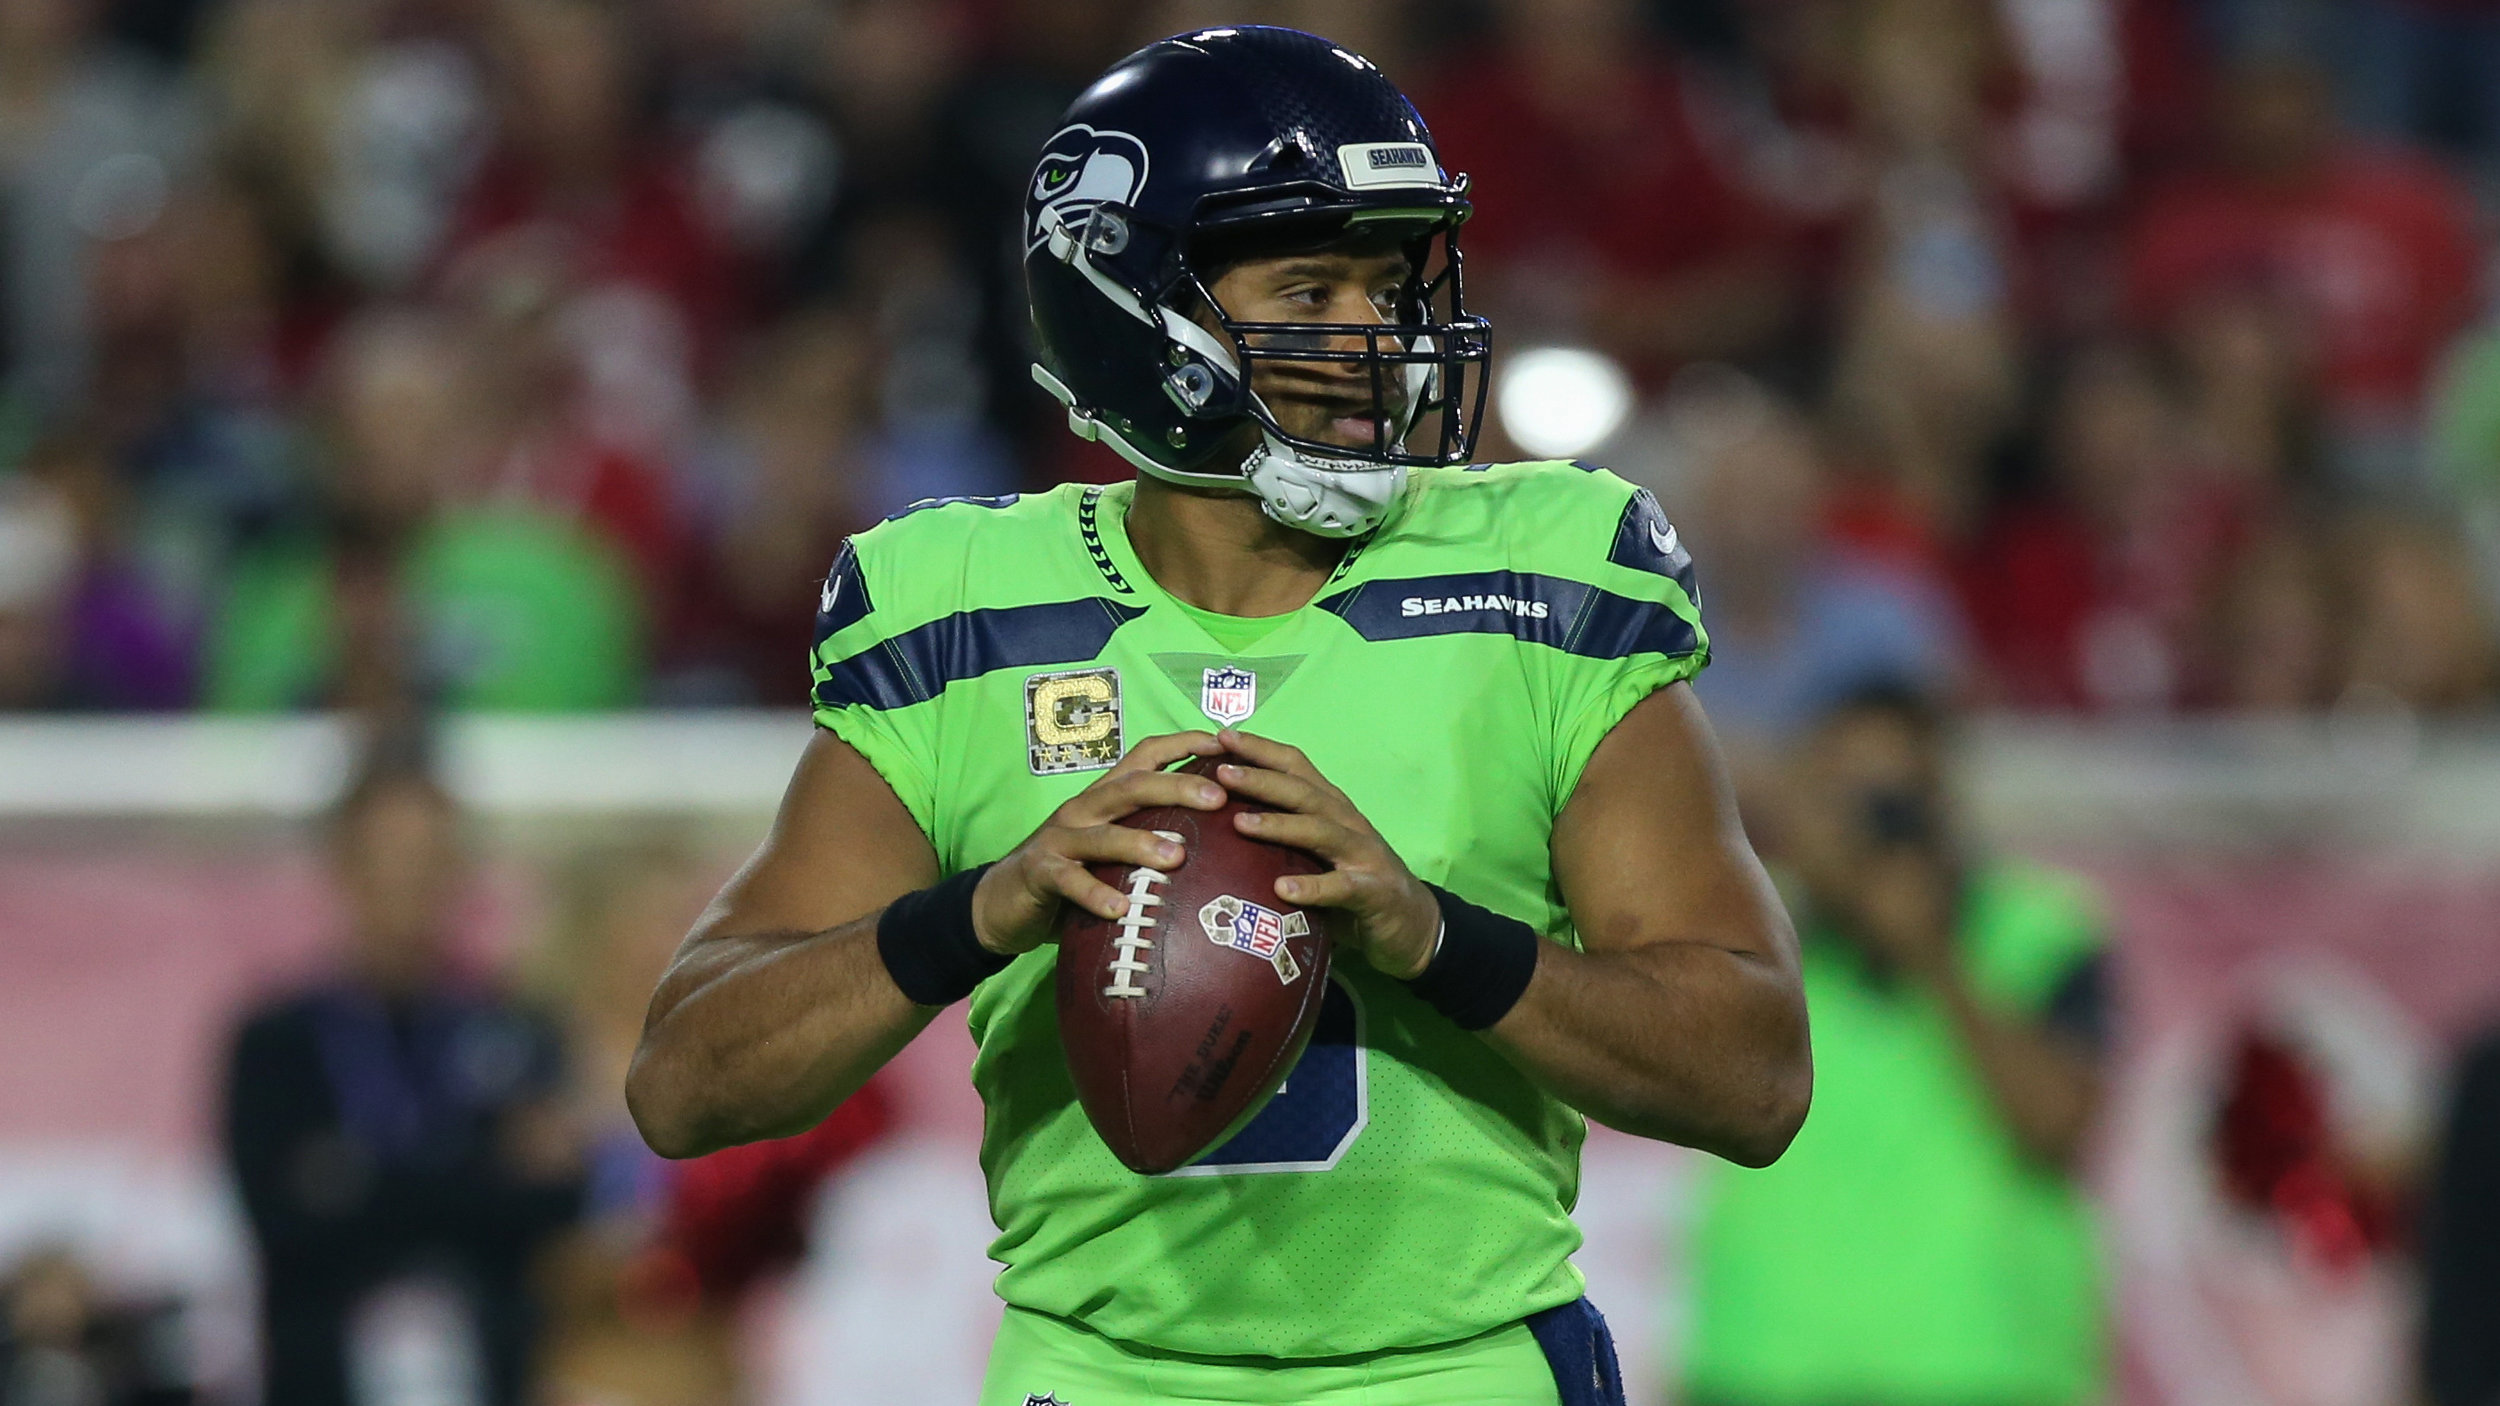 seahawks-russell-wilson-concussion-test-nfl-review1.jpg